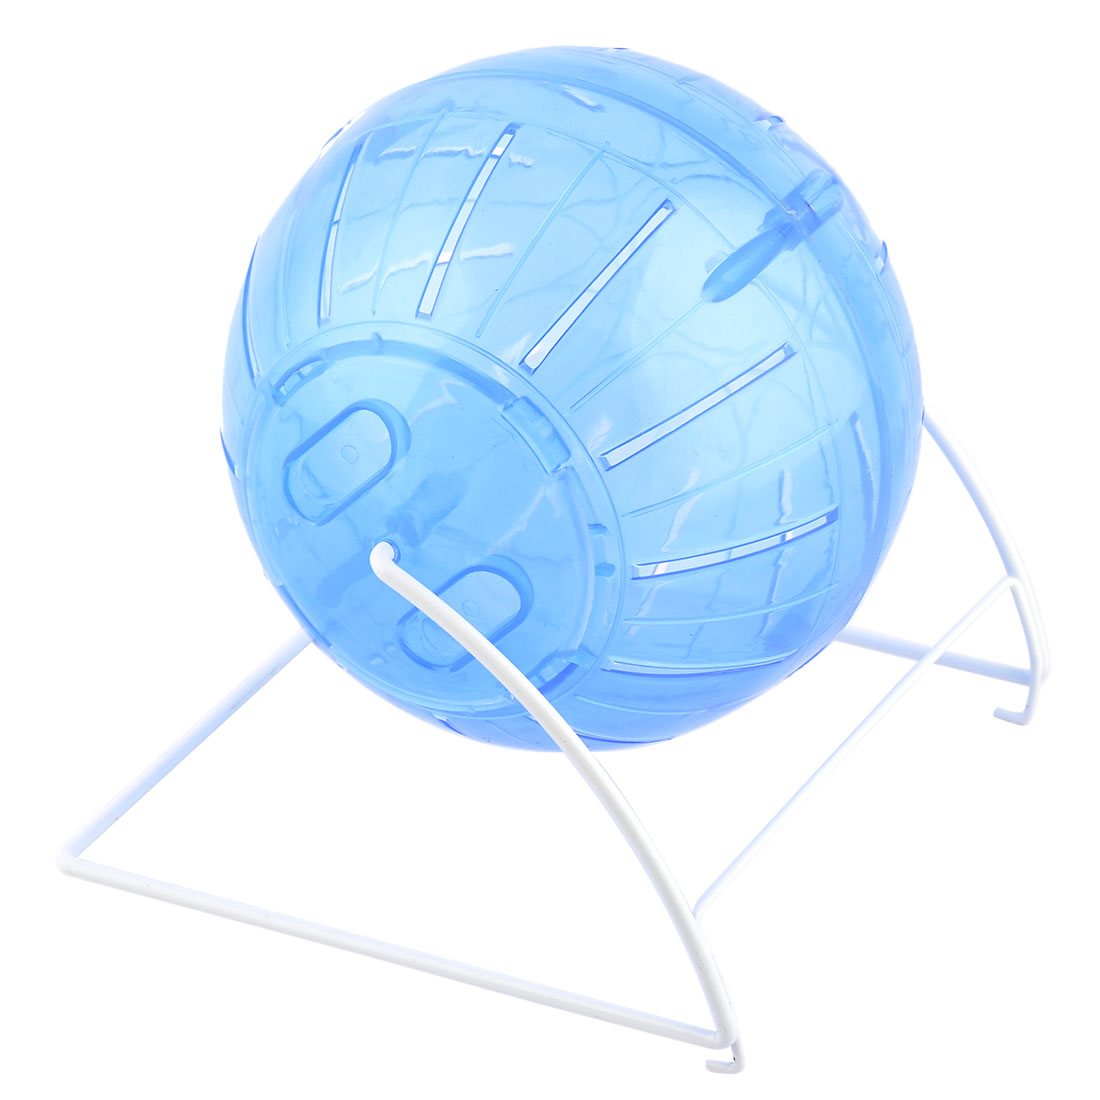 Hamster Gerbil Mice Mouse Fitness Exercise Toy Ball Wheel Cage White Blue by Unique-Bargains